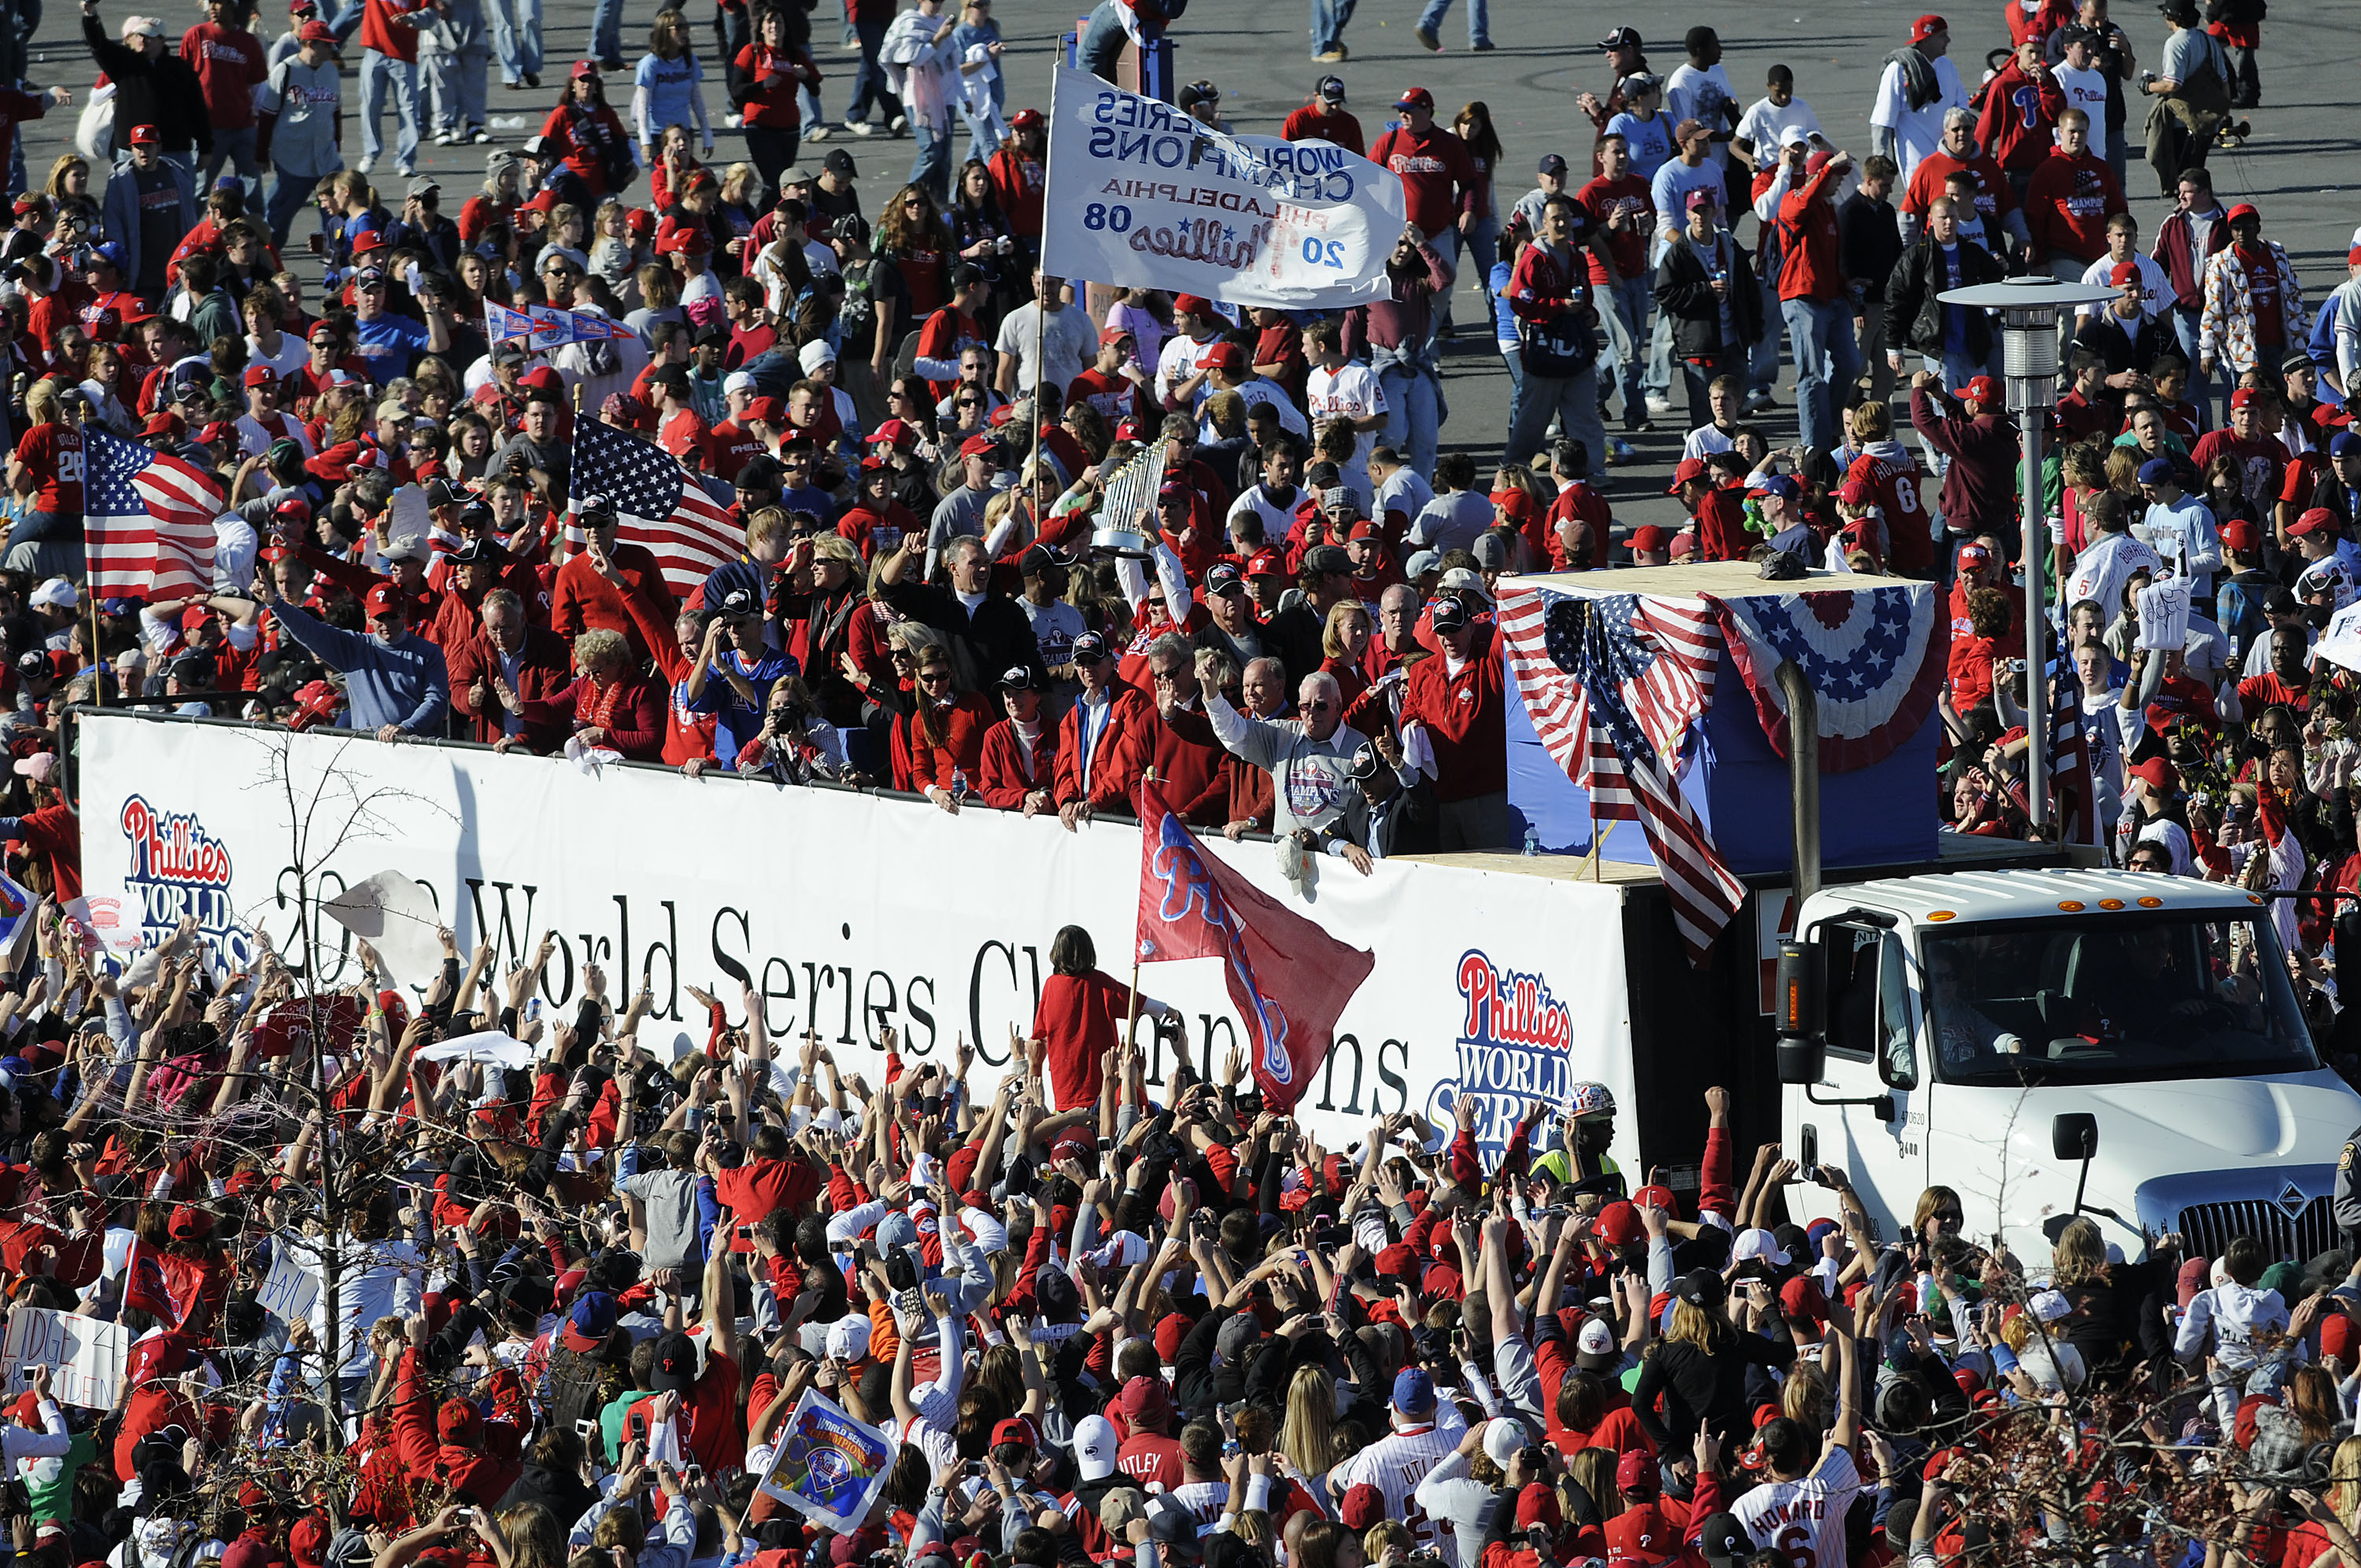 PHILADELPHIA, PA - OCTOBER 31: The Philadelphia Philies arrive at a victory rally at Citizens Bank Park October 31, 2008 in Philadelphia, Pennsylvania. The Phillies defeated the Tampa Bay Rays to win their first World Series in 28 years. (Photo by Jeff Fu